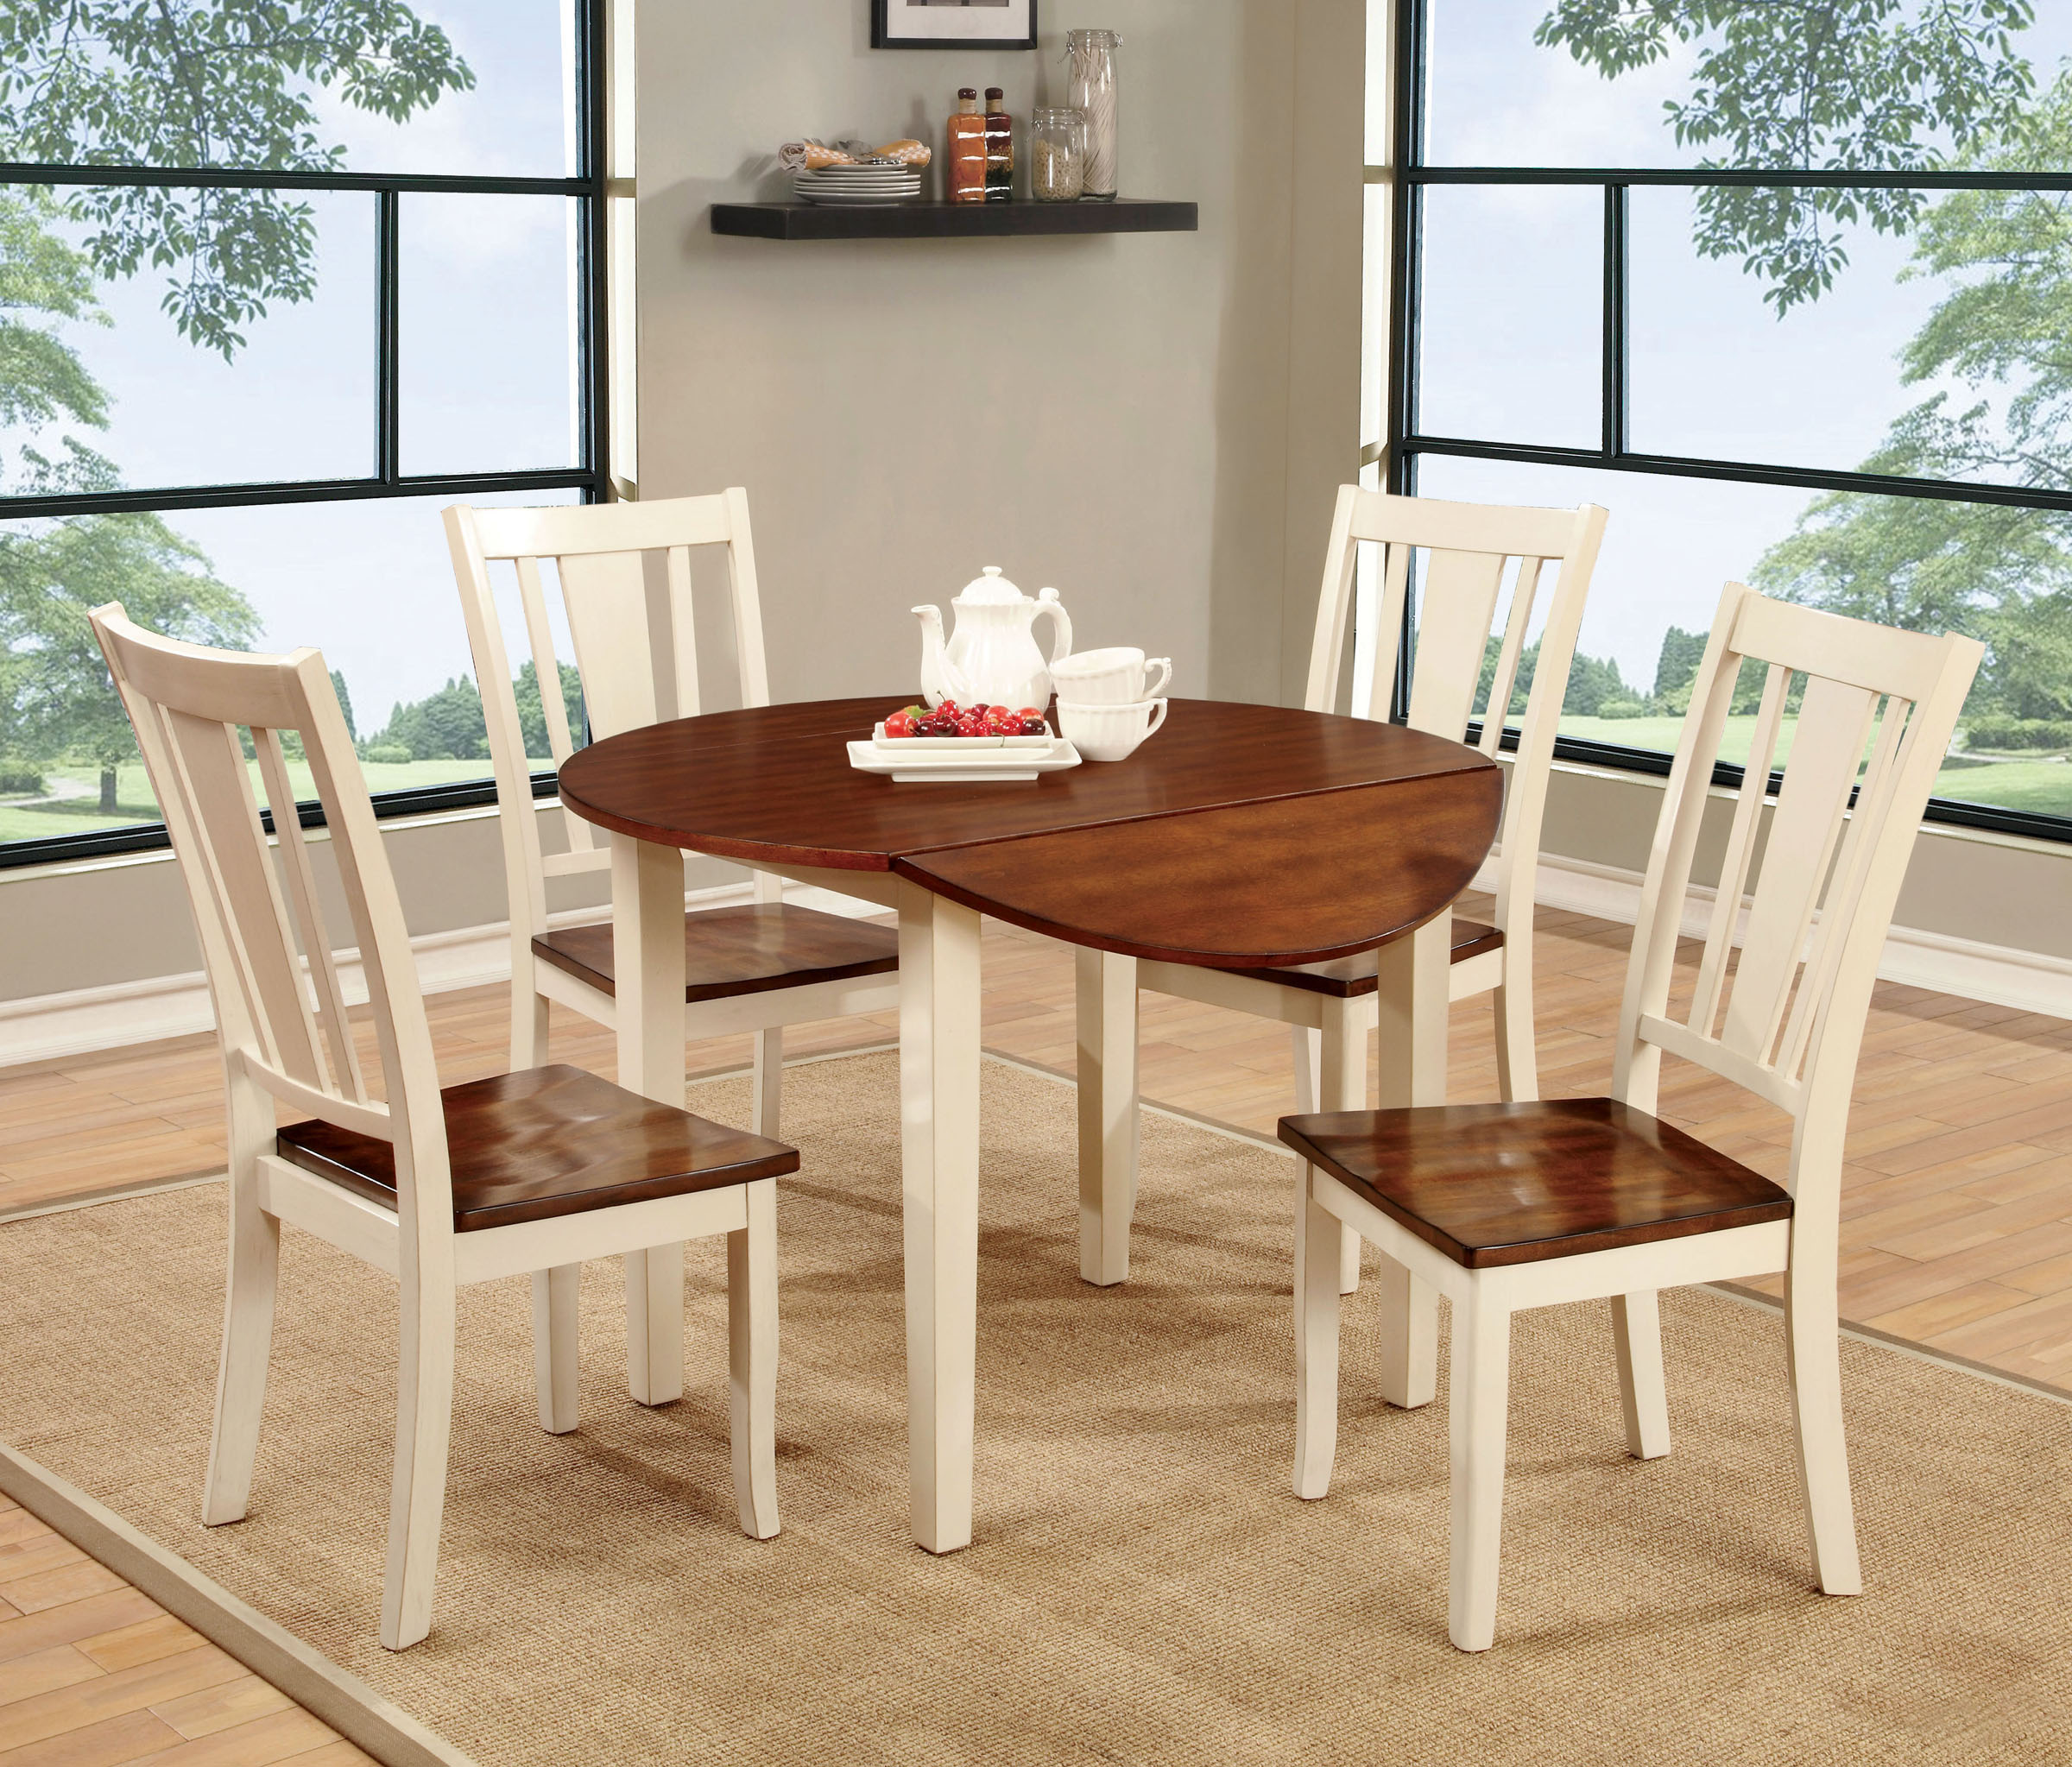 Picture of: What Is A Dining Table Extension Leaf